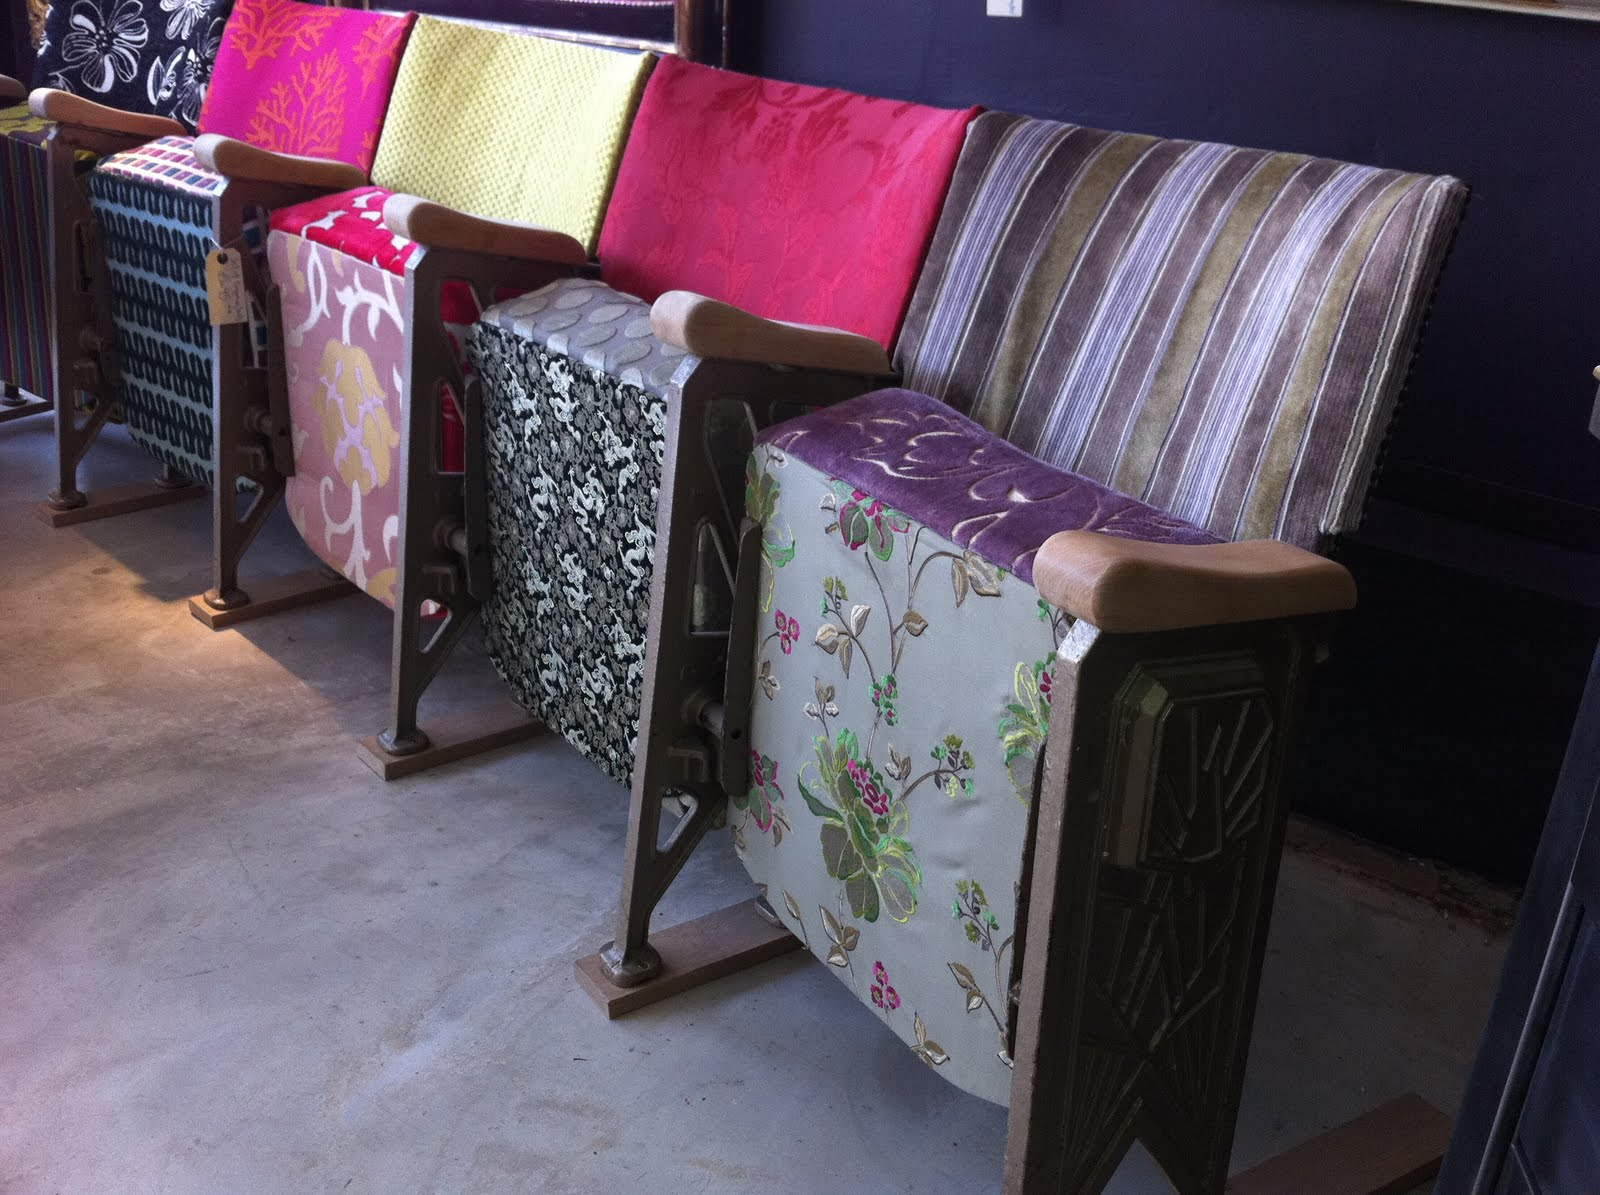 Theater Chair Covers Best For Bad Back At Home Liscious Interiors